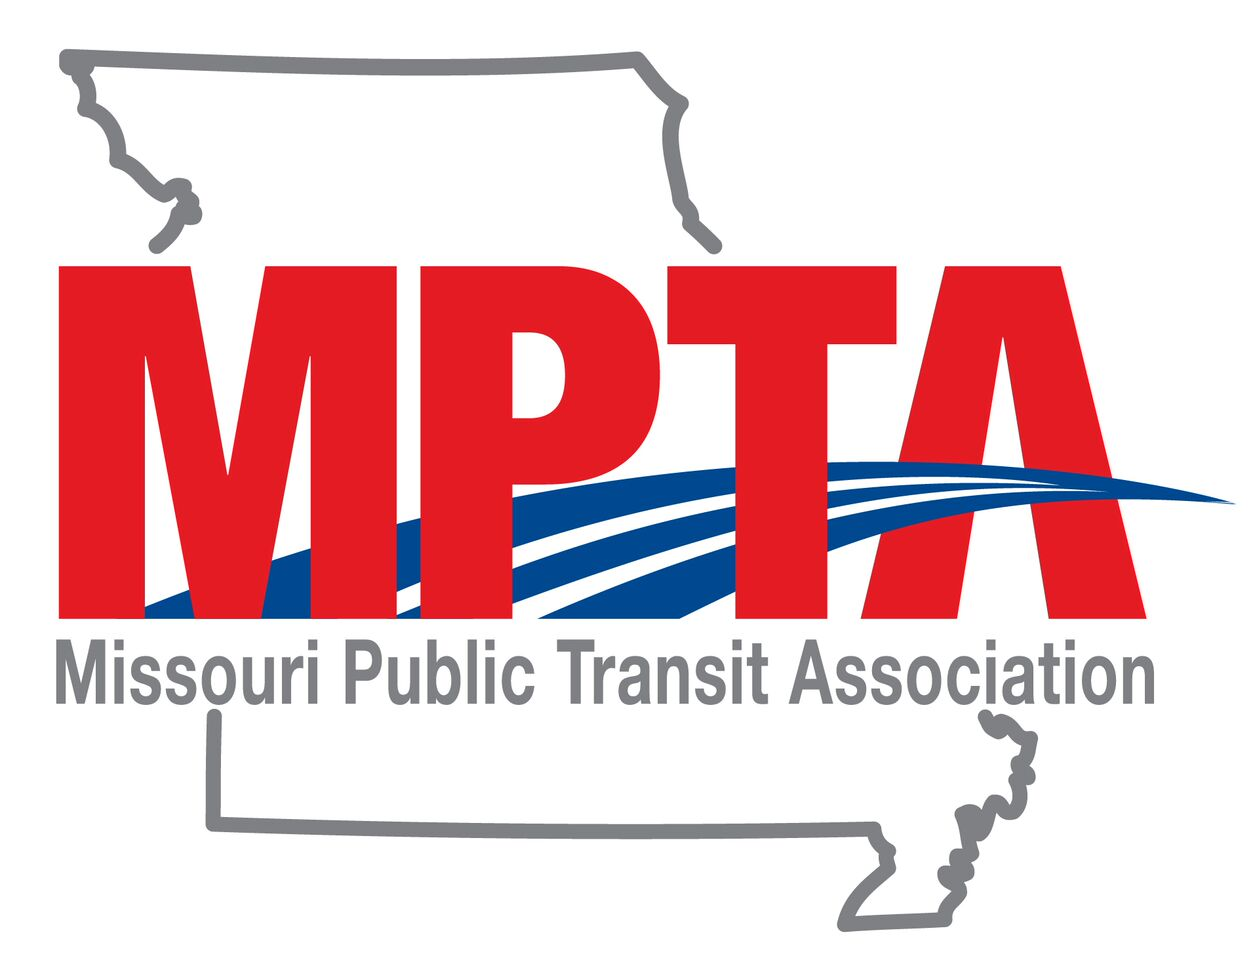 Missouri Public Transit Association